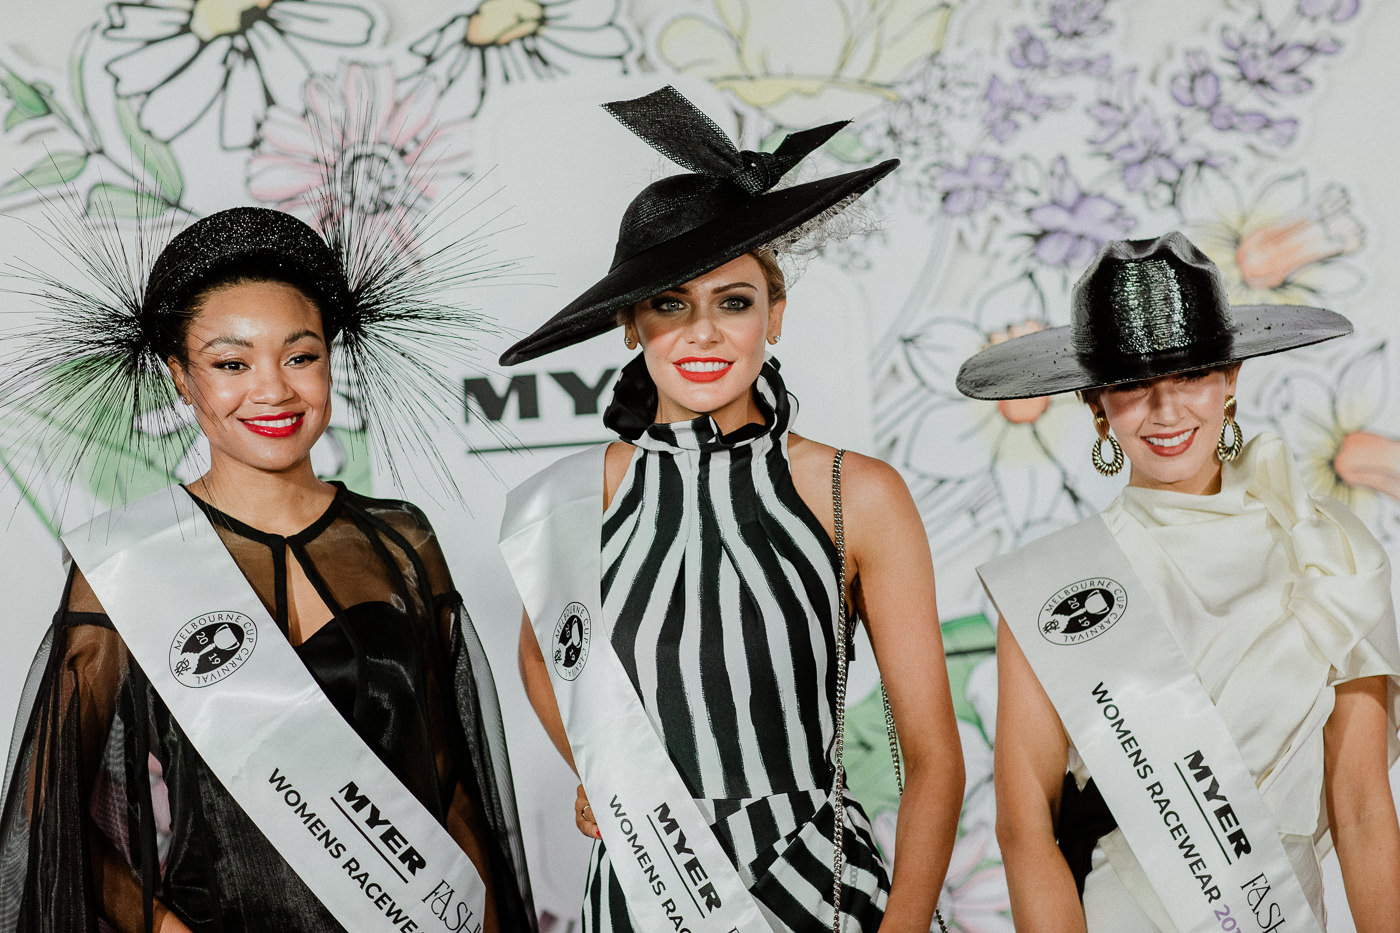 the fashion winners of derby day 2019 at the Melbourne Spring Racing Carnival